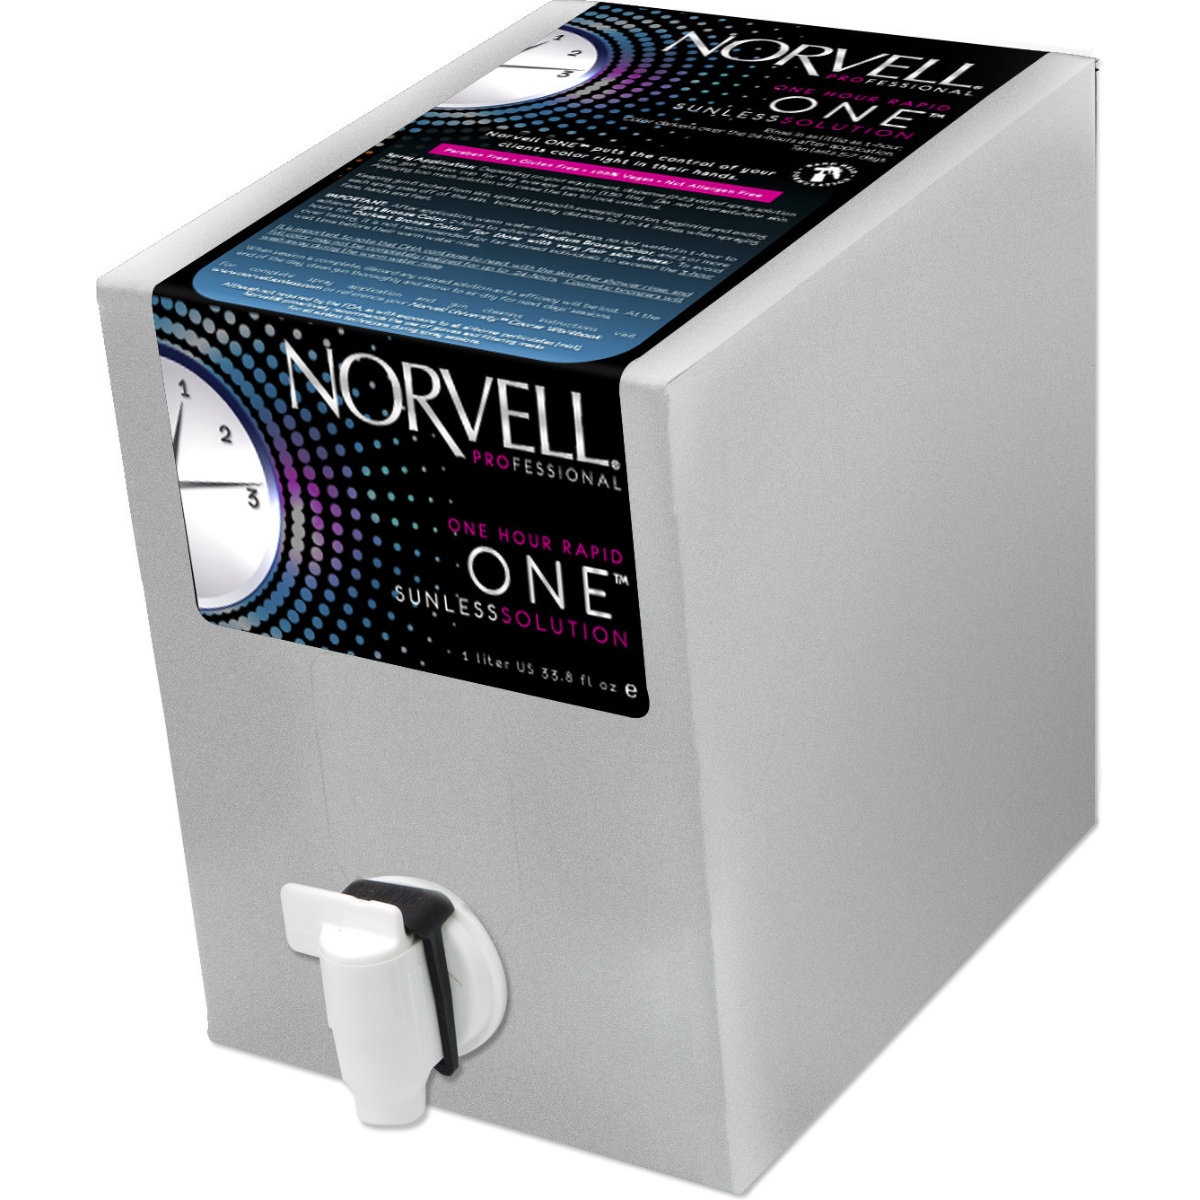 Norvell ONE Rapid Sunless Handheld Solution - 34 oz.